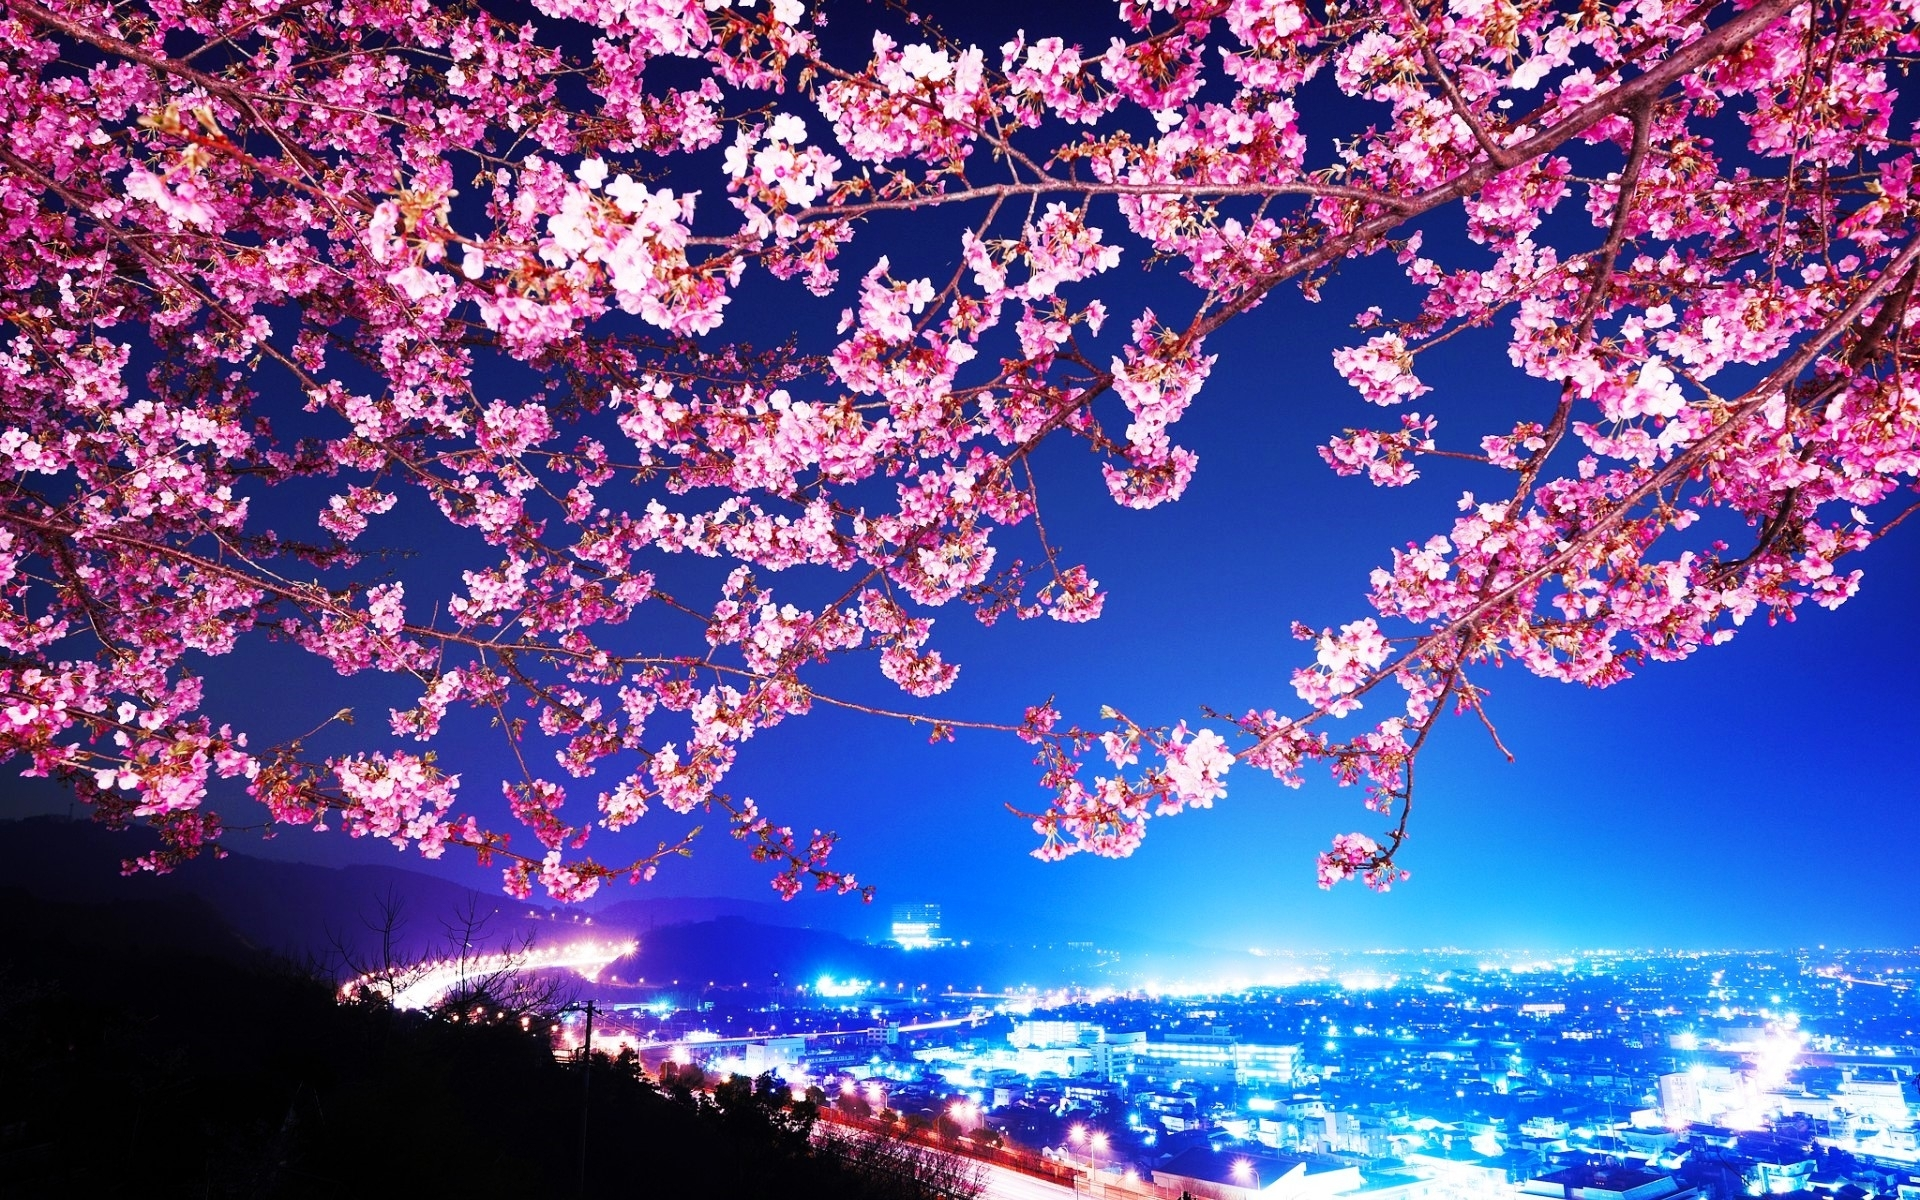 cherry blossom wallpaper night wallpaper wide - download hd cherry